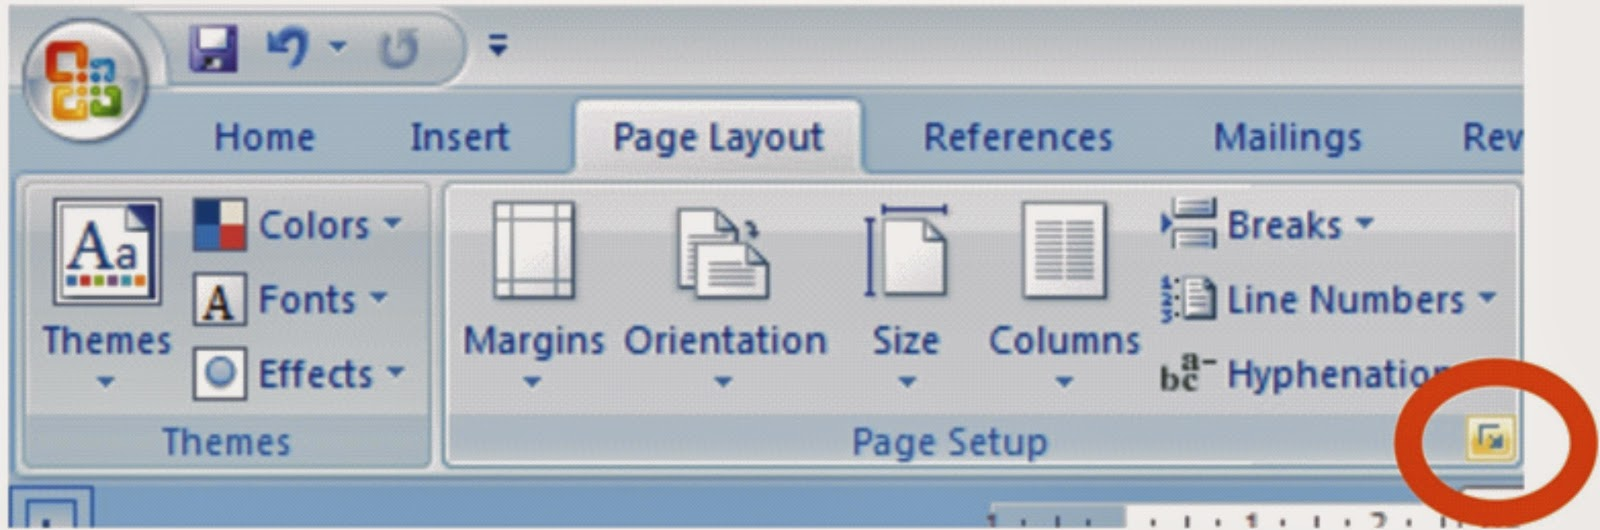 how to make the page landscape on microsoft word